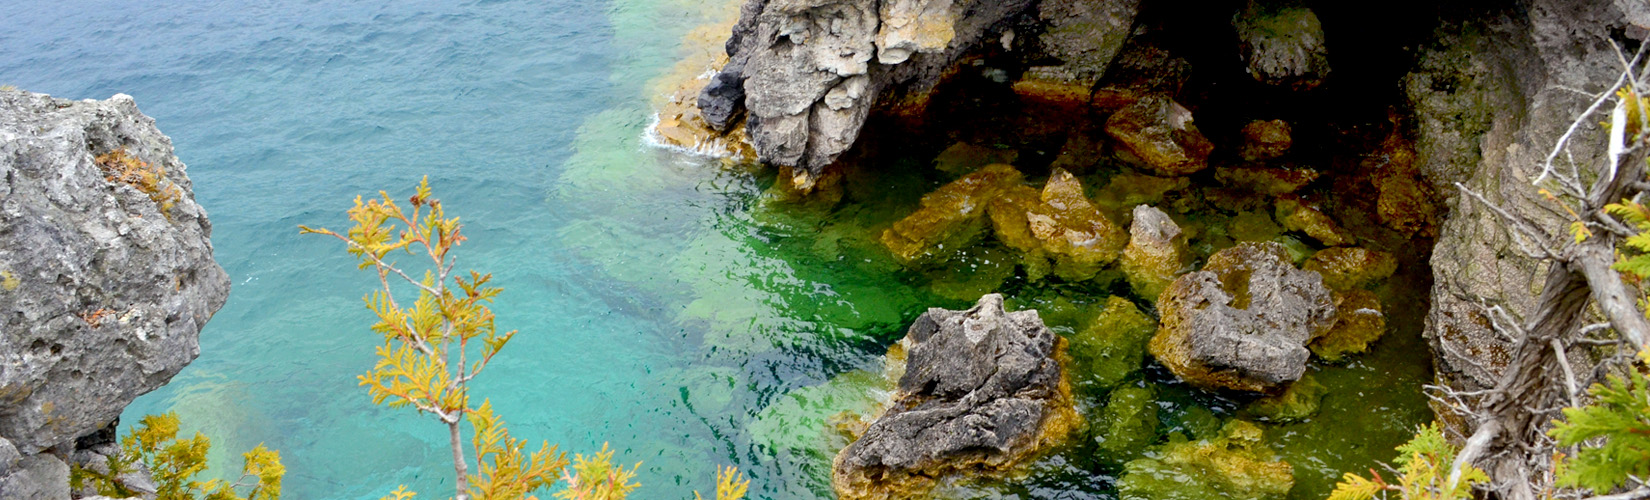 I've Been Bit! A Travel Blog :: Explore Bruce - The Grotto, Indian Head Cove & More!